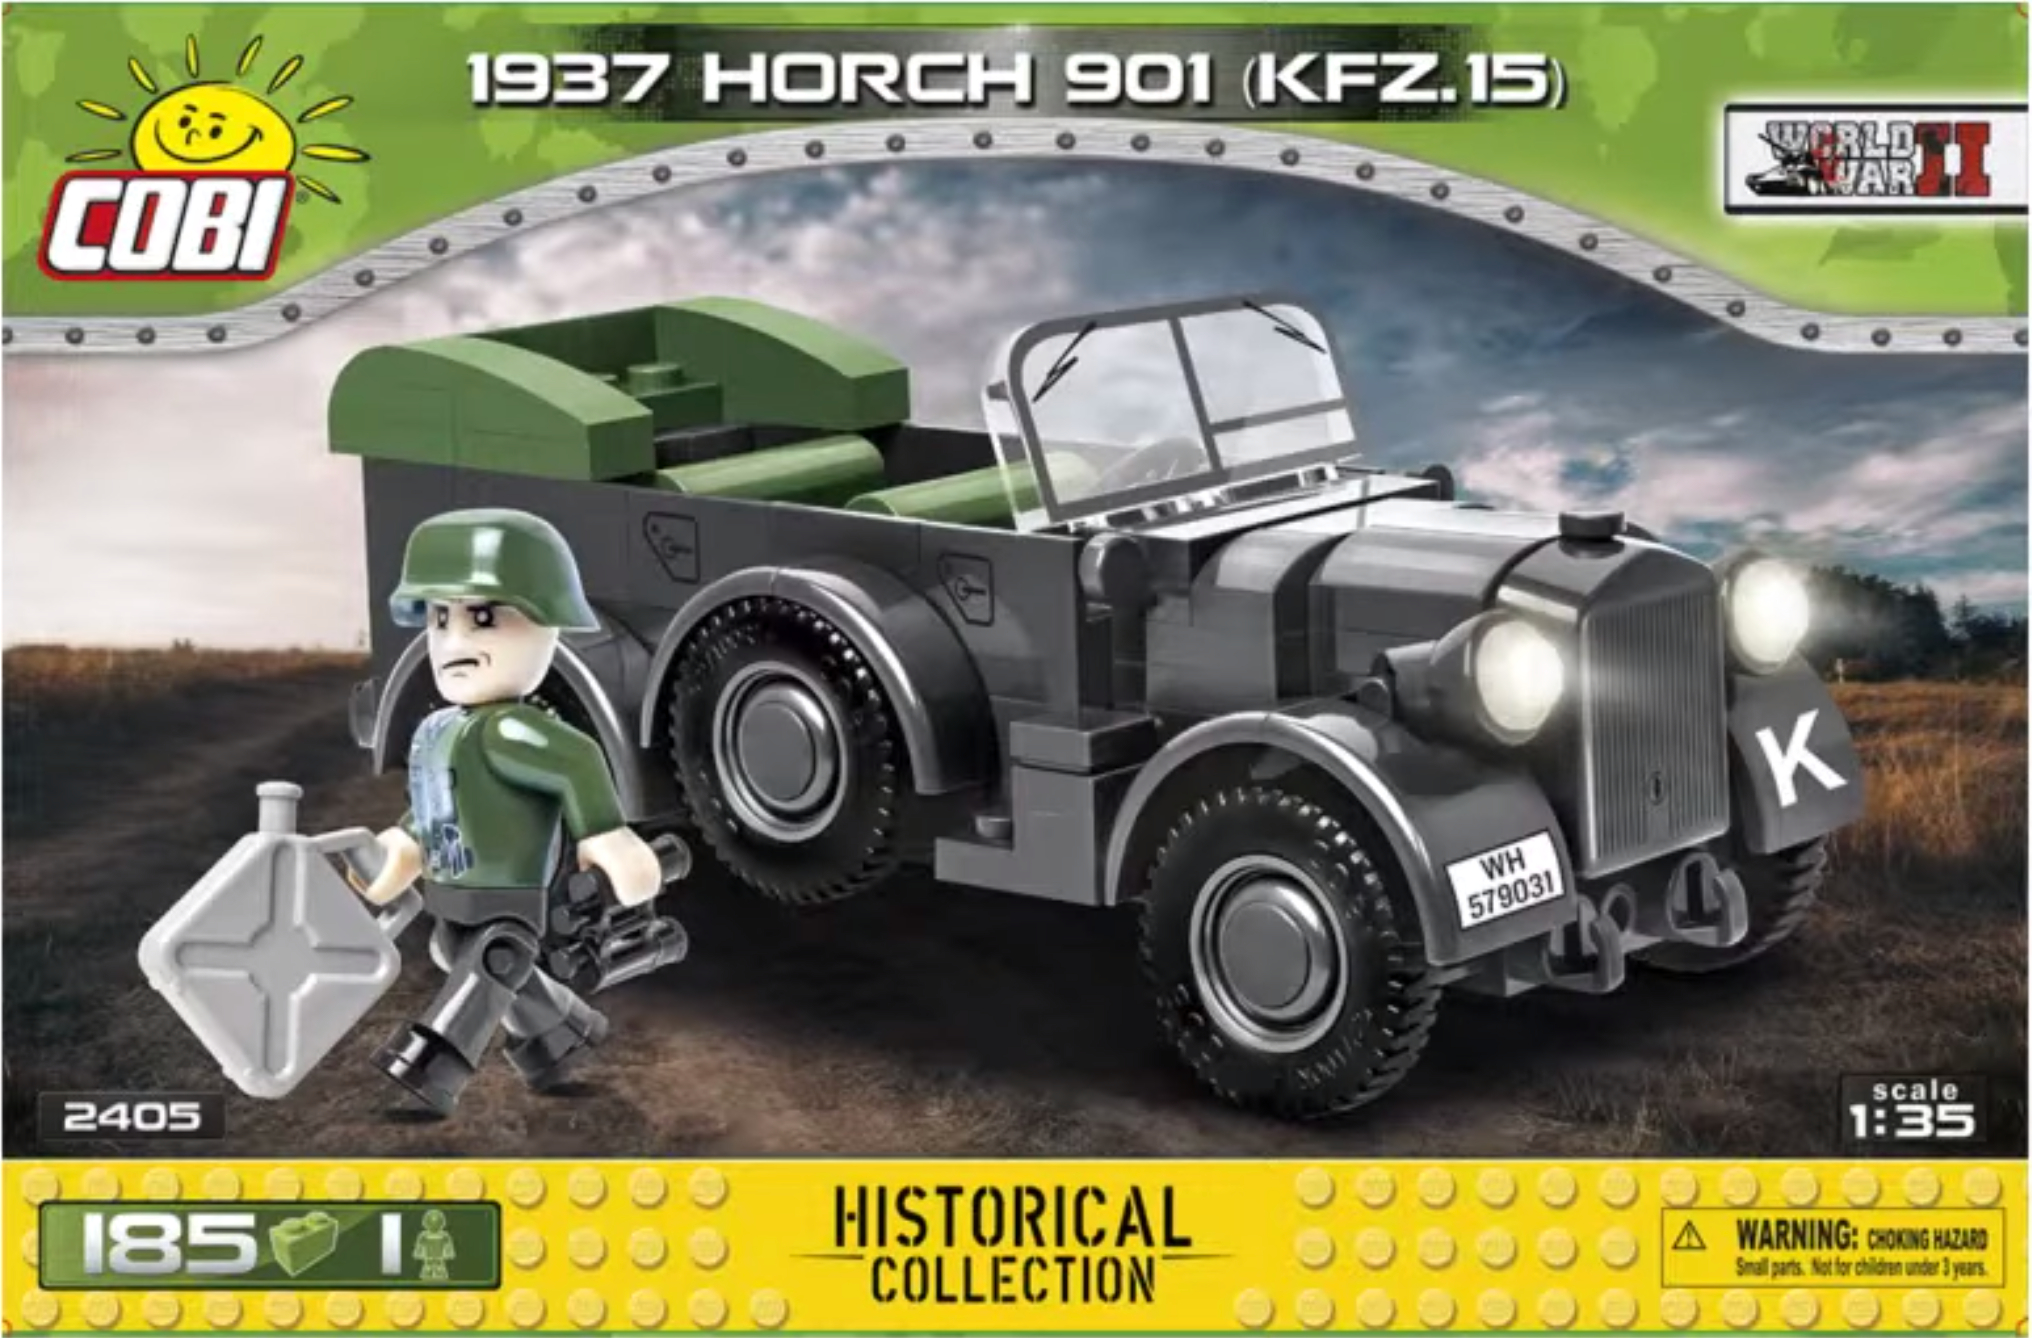 2405 - 1937 Horch 901 kfz.15